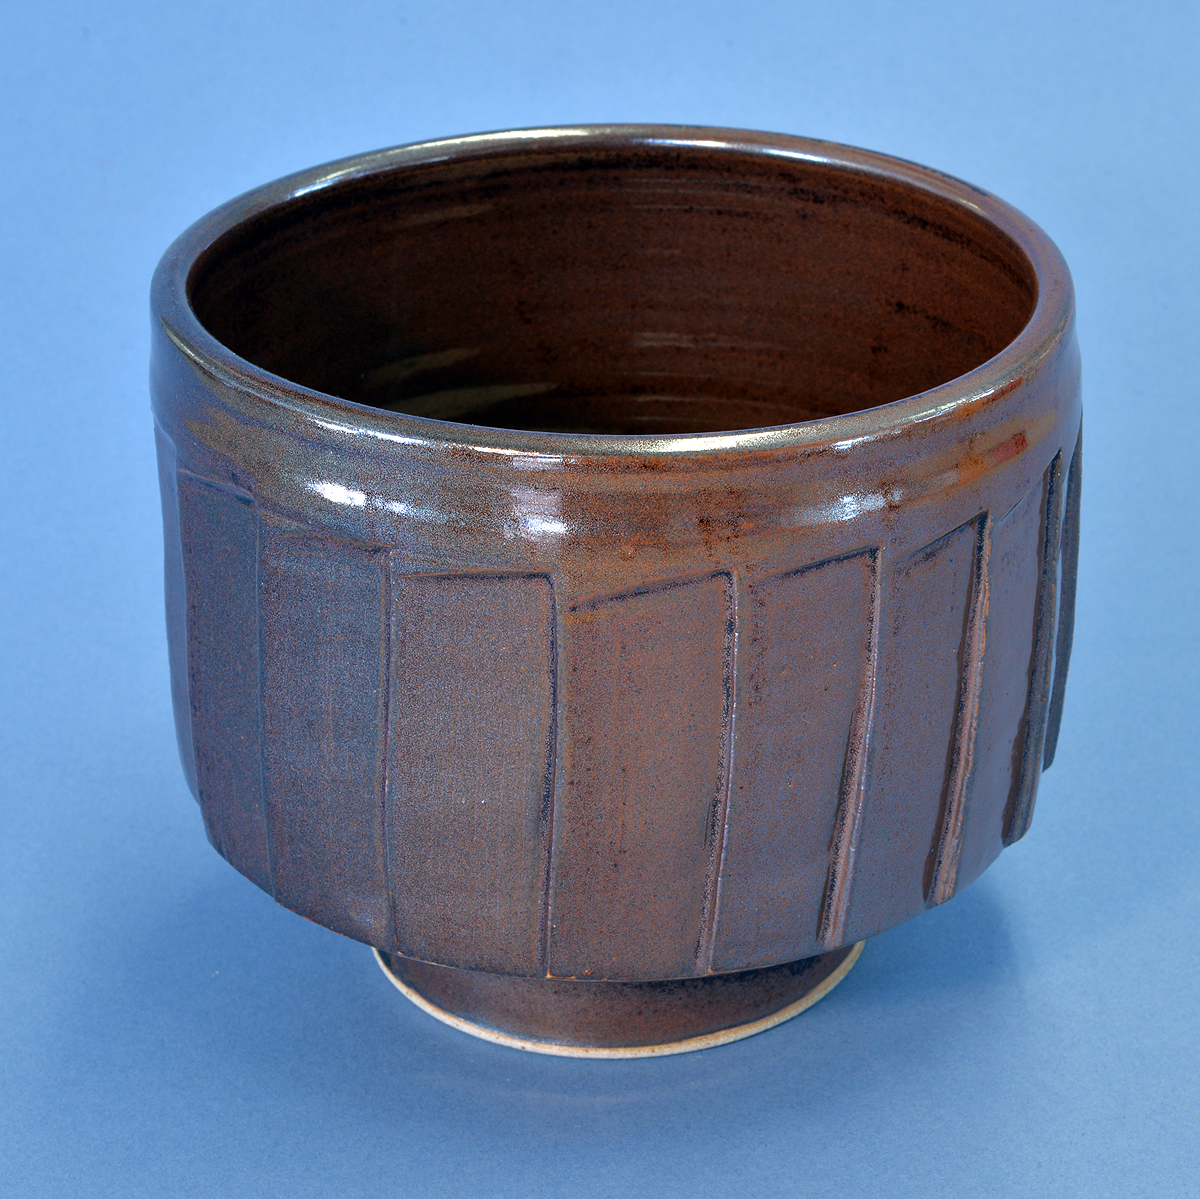 Cut-sided brown jar